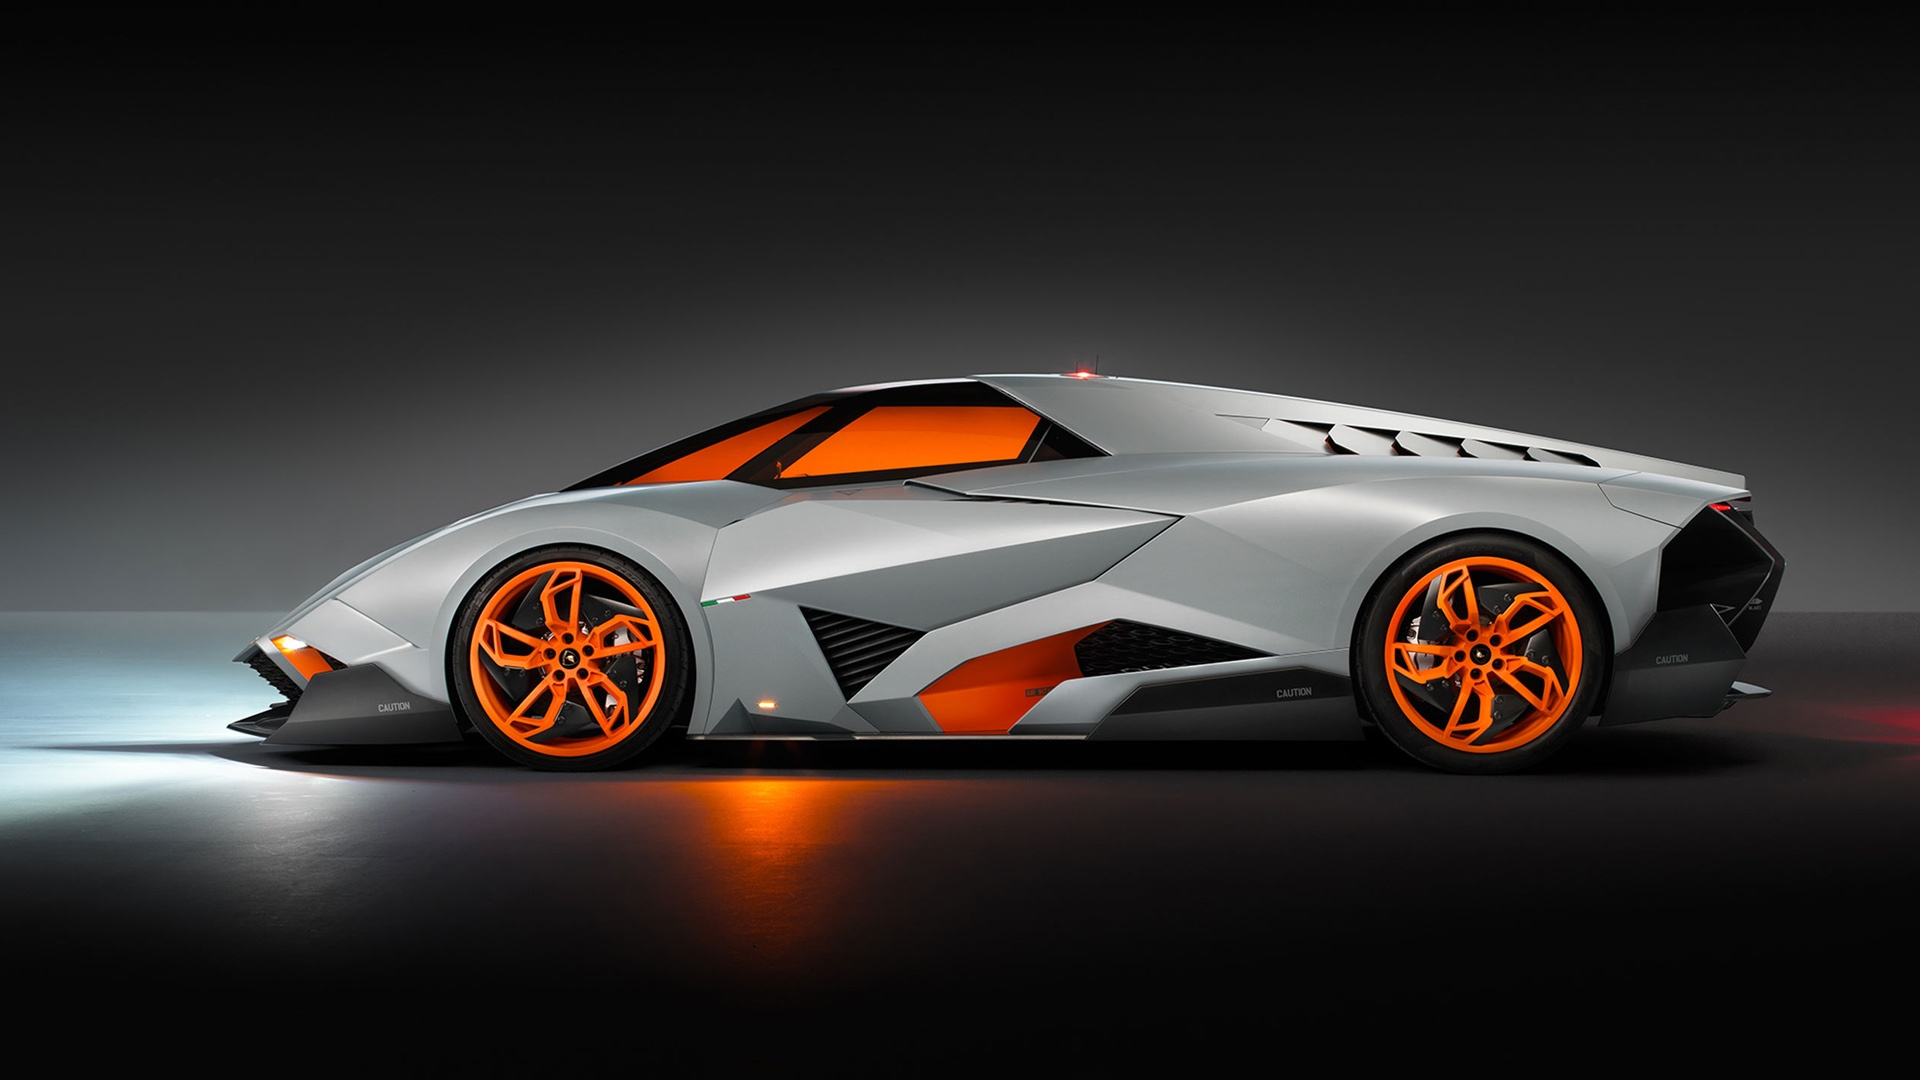 Lamborghini Egoista Concept 3 Wallpaper HD Car Wallpapers 1920x1080